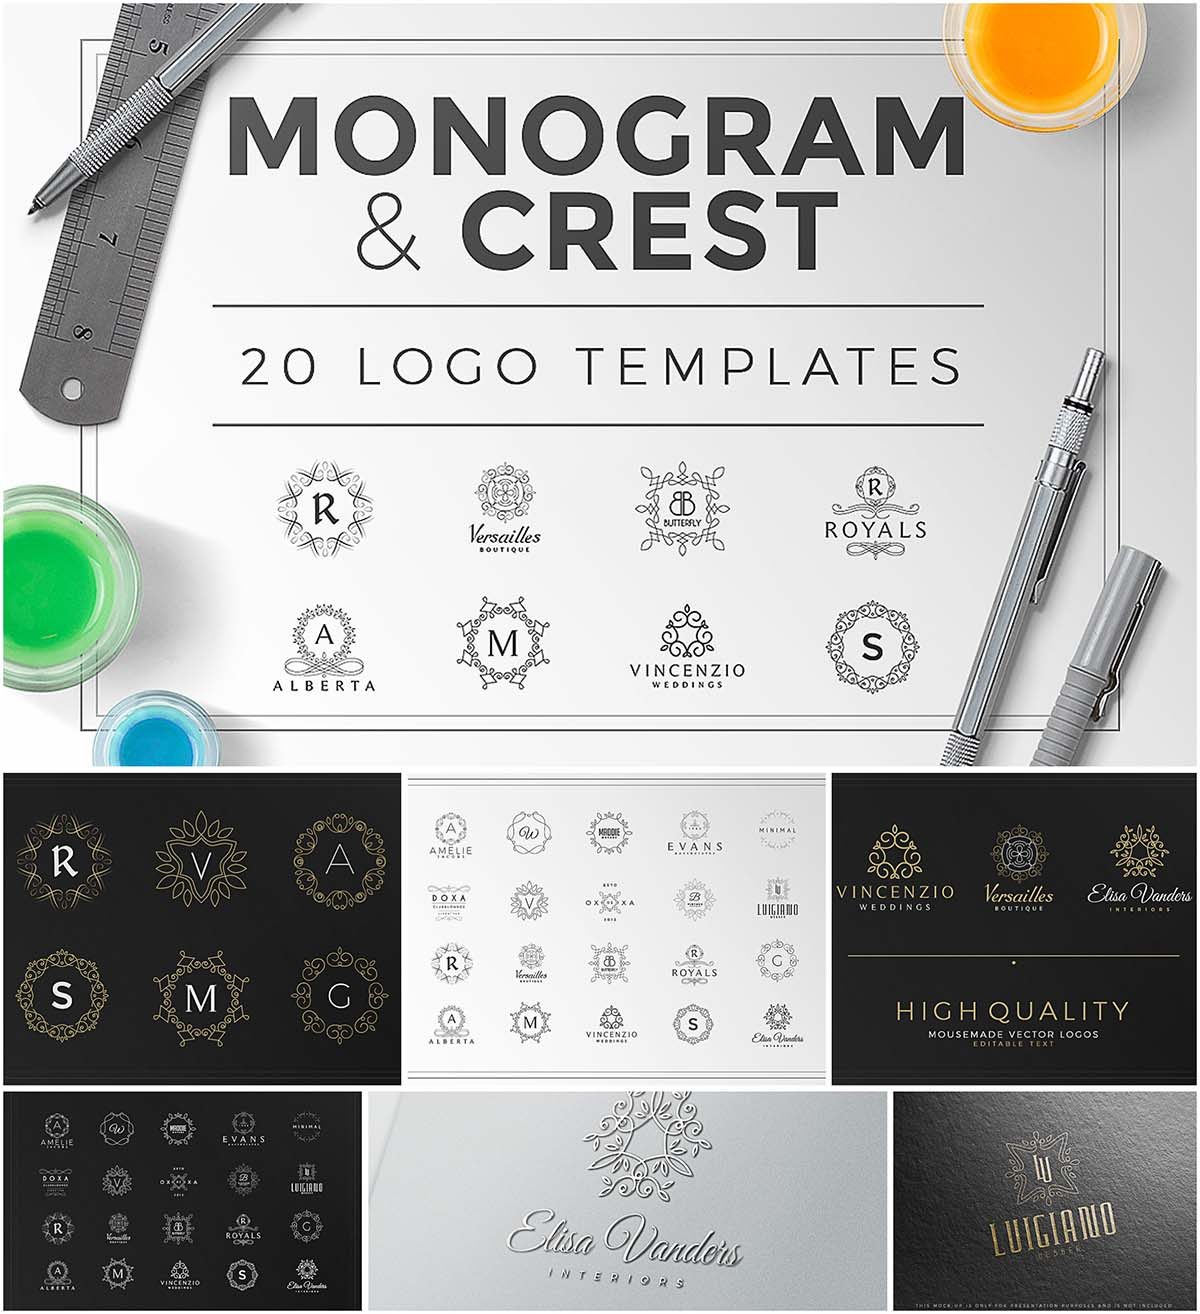 Monogram logo templates